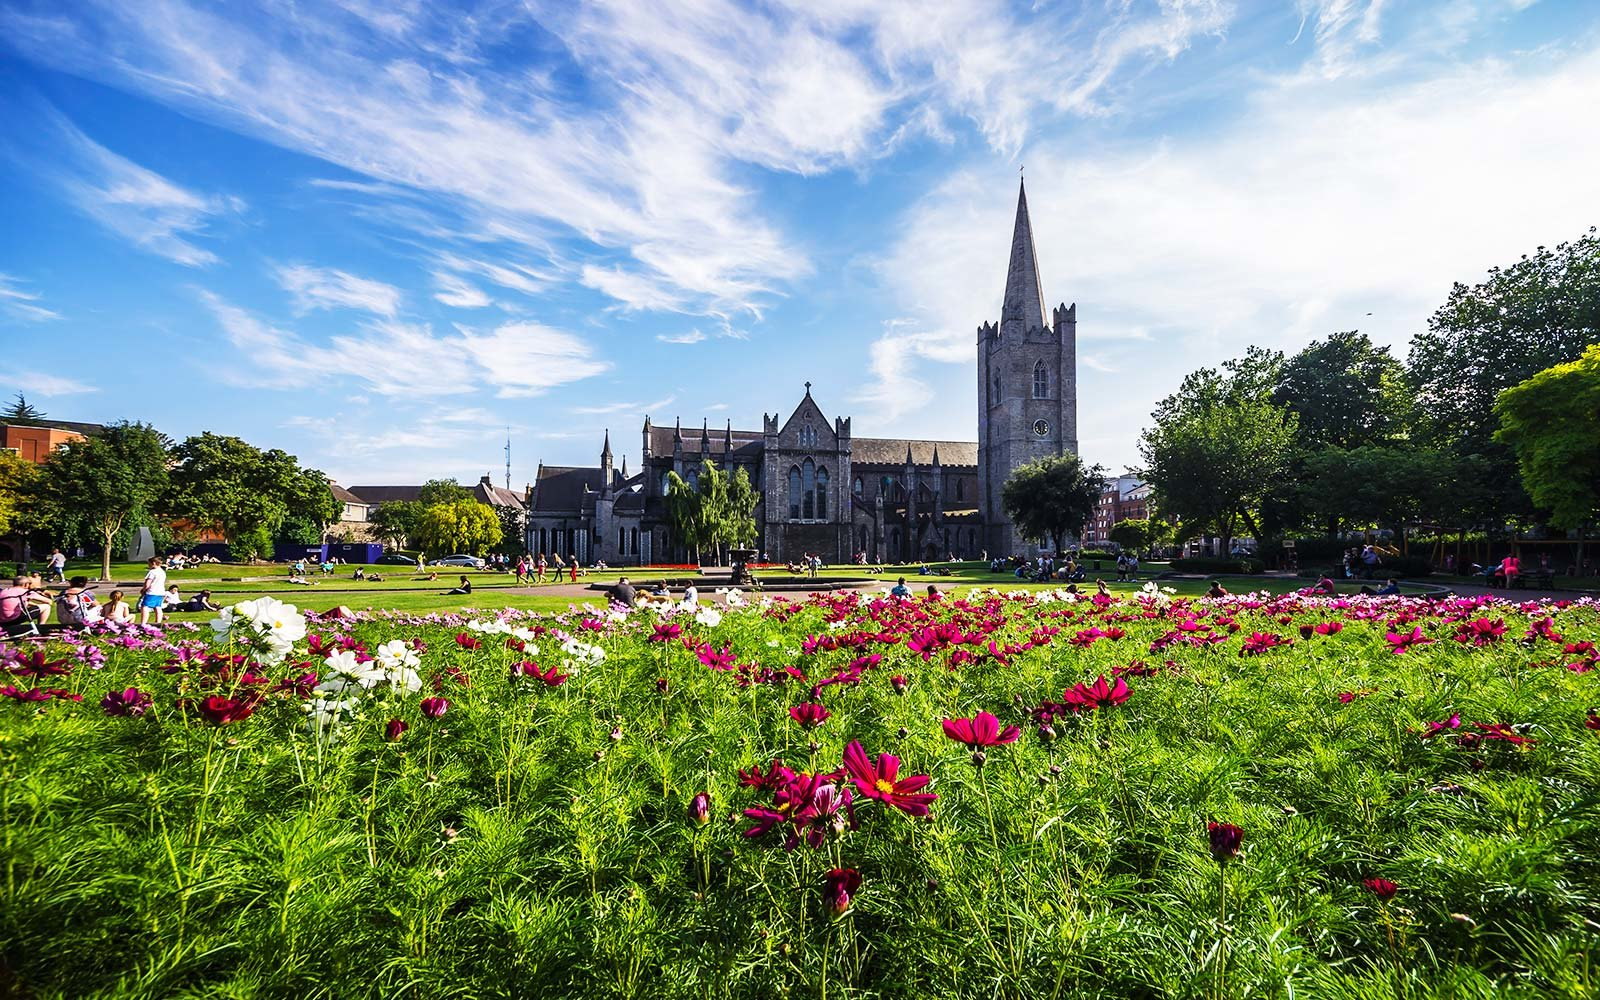 Ireland, County Dublin, Dublin, Wood Quay, St Patrick's Cathedral and St Patricks Park